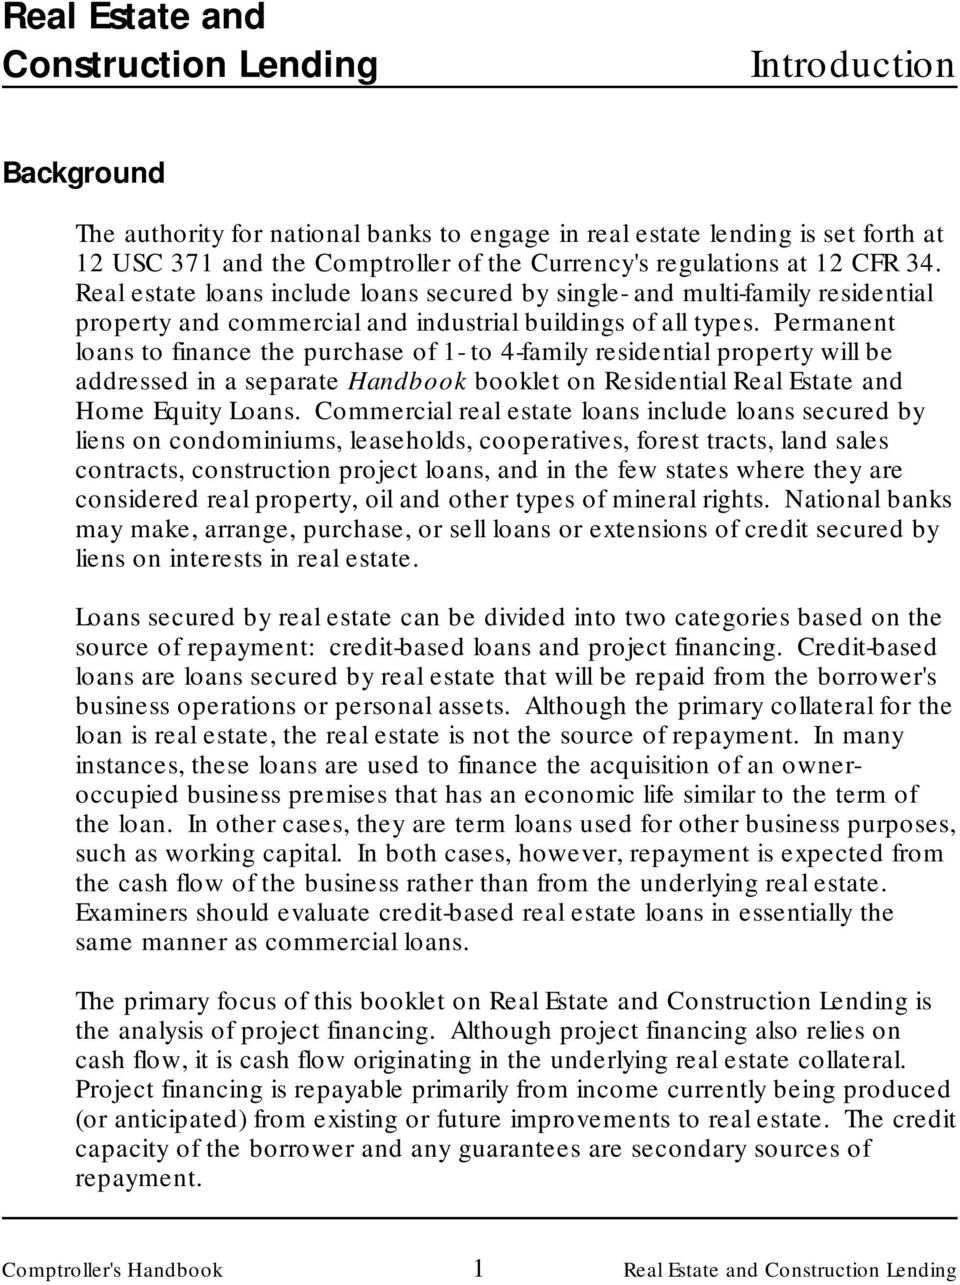 Permanent loans to finance the purchase of 1- to 4-family residential property will be addressed in a separate Handbook booklet on Residential Real Estate and Home Equity Loans.